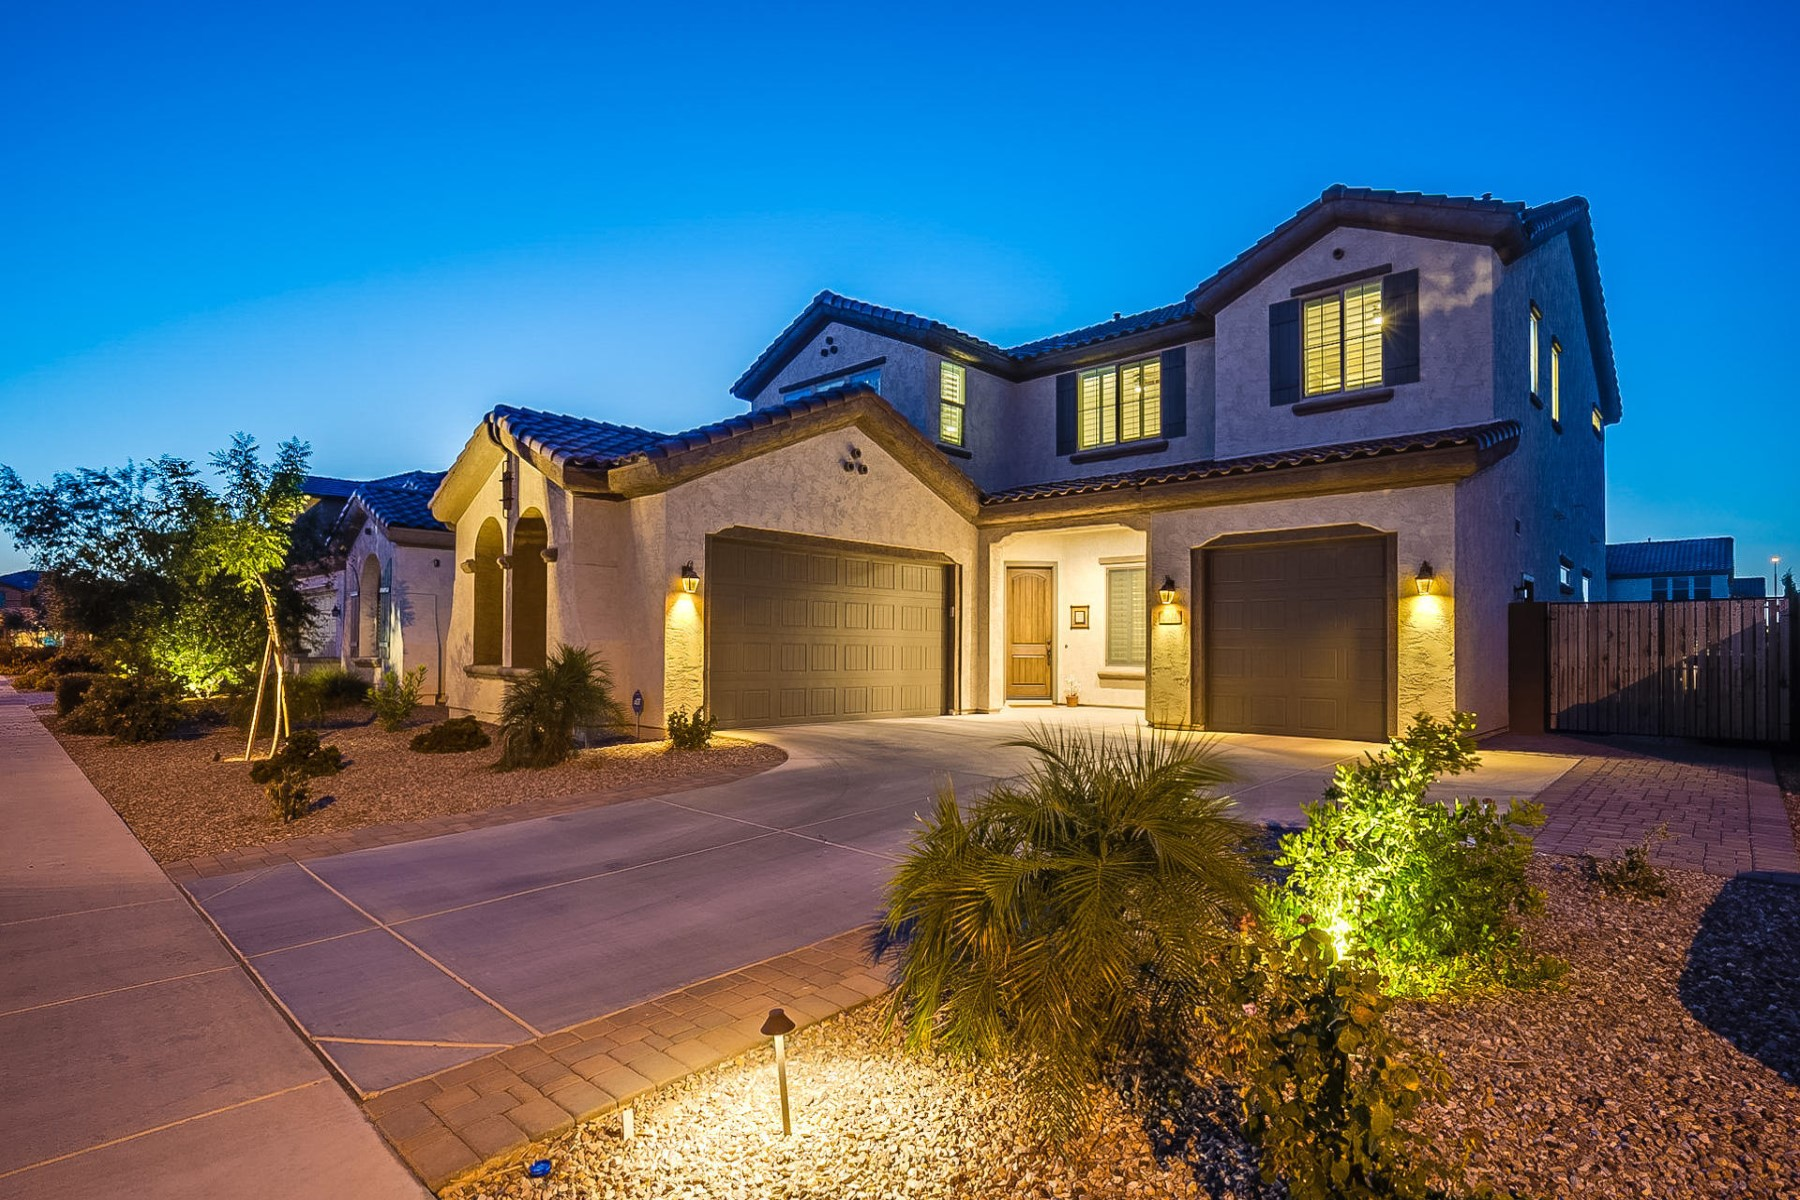 Single Family Homes for Active at Calabria 1874 E CRESCENT WAY Chandler, Arizona 85249 United States